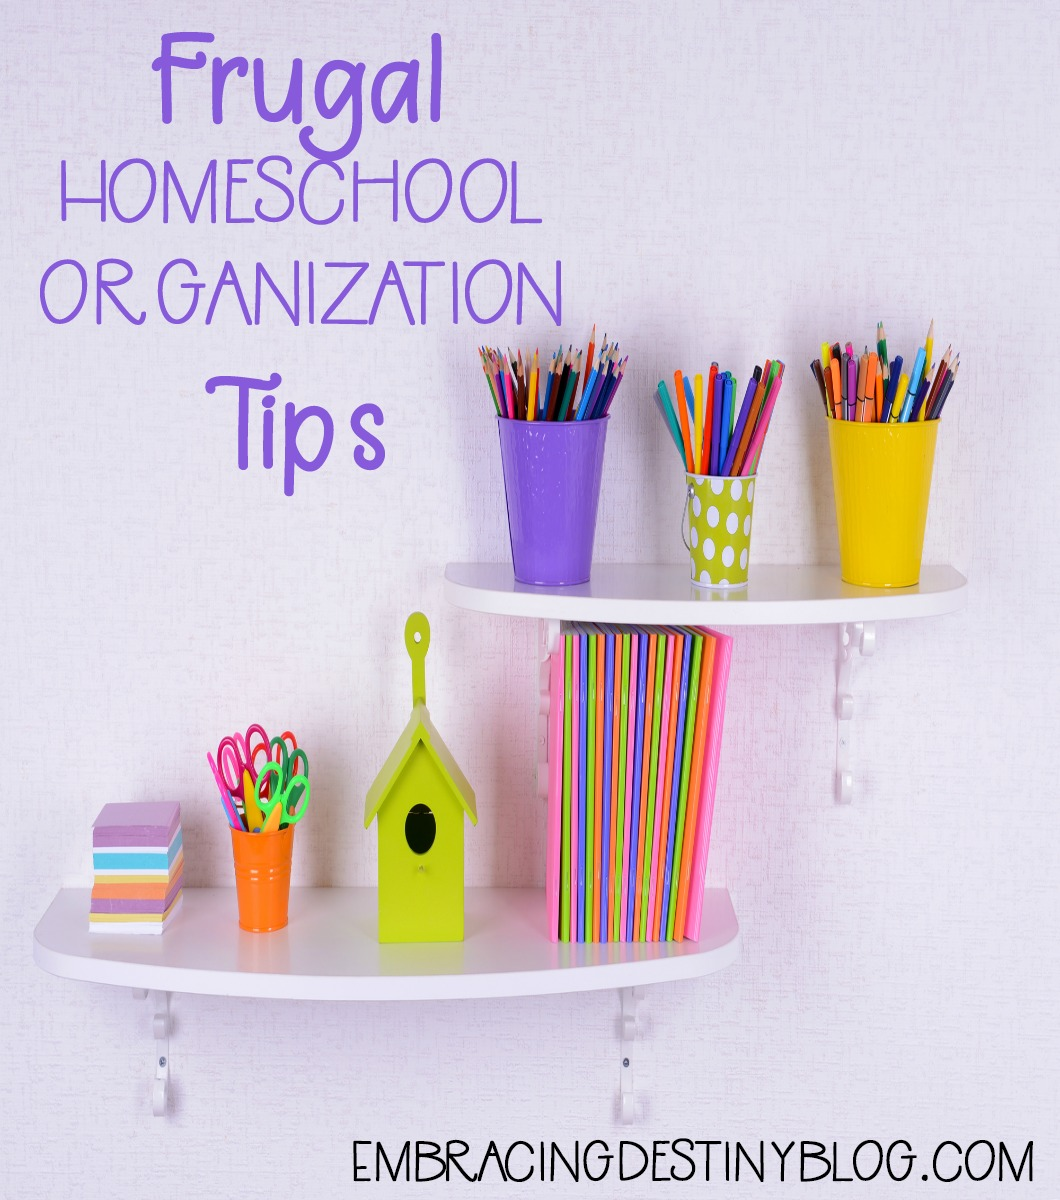 Frugal Homeschool Organization Tips using Dollar Tree Supplies